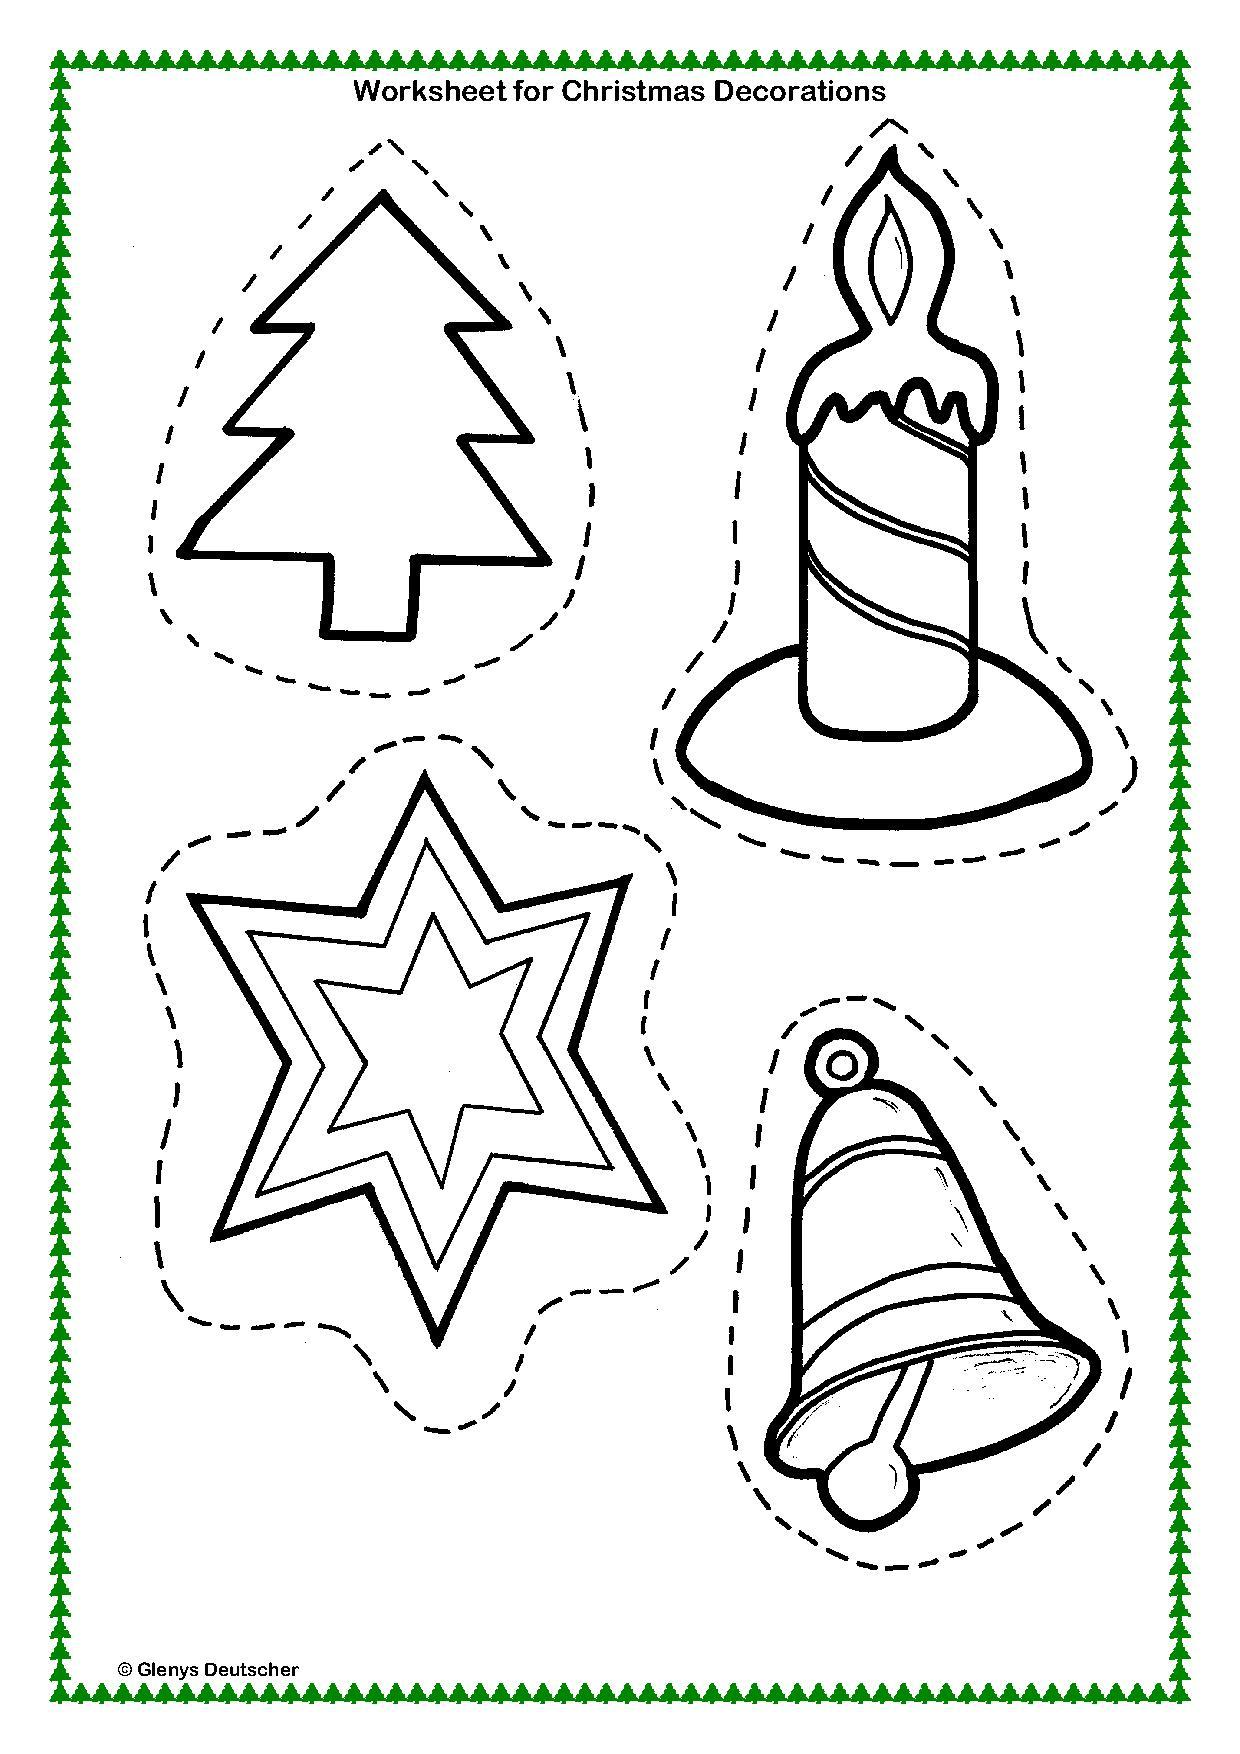 Google Image Result forphonicsnetauimageschristmas – Christmas Activity Worksheets